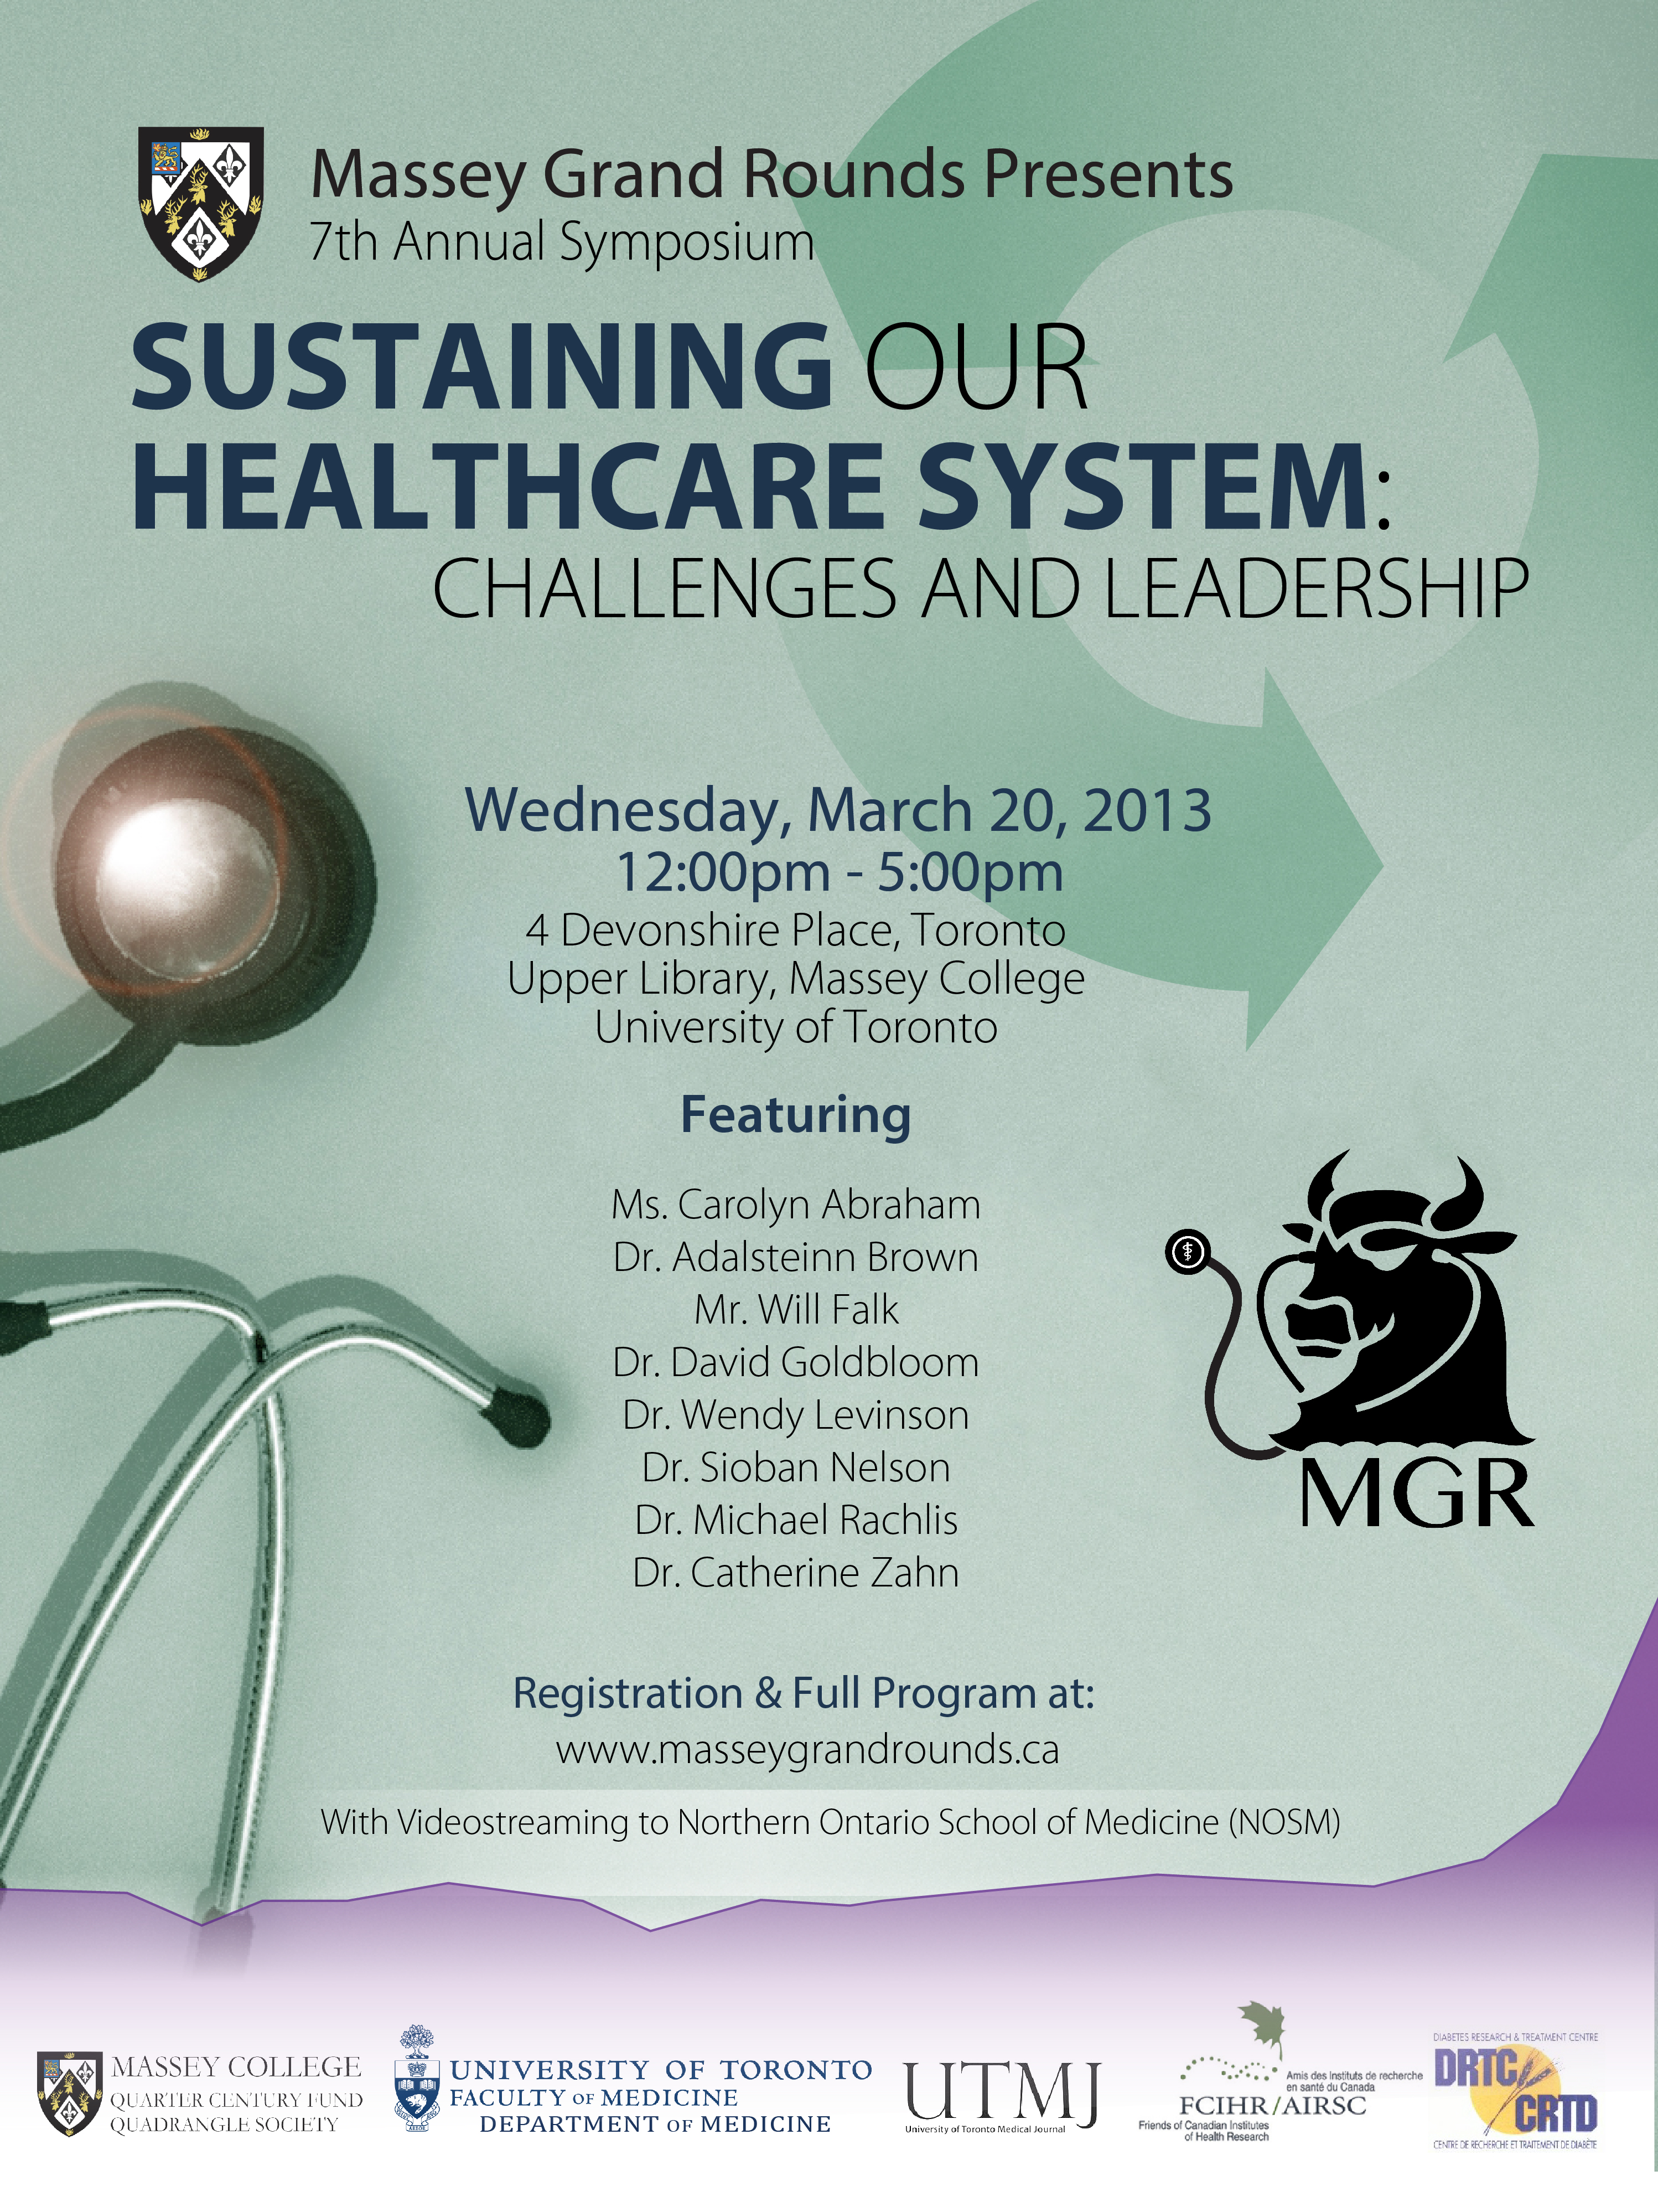 POSTER - 2013 Massey Grand Rounds Symposium